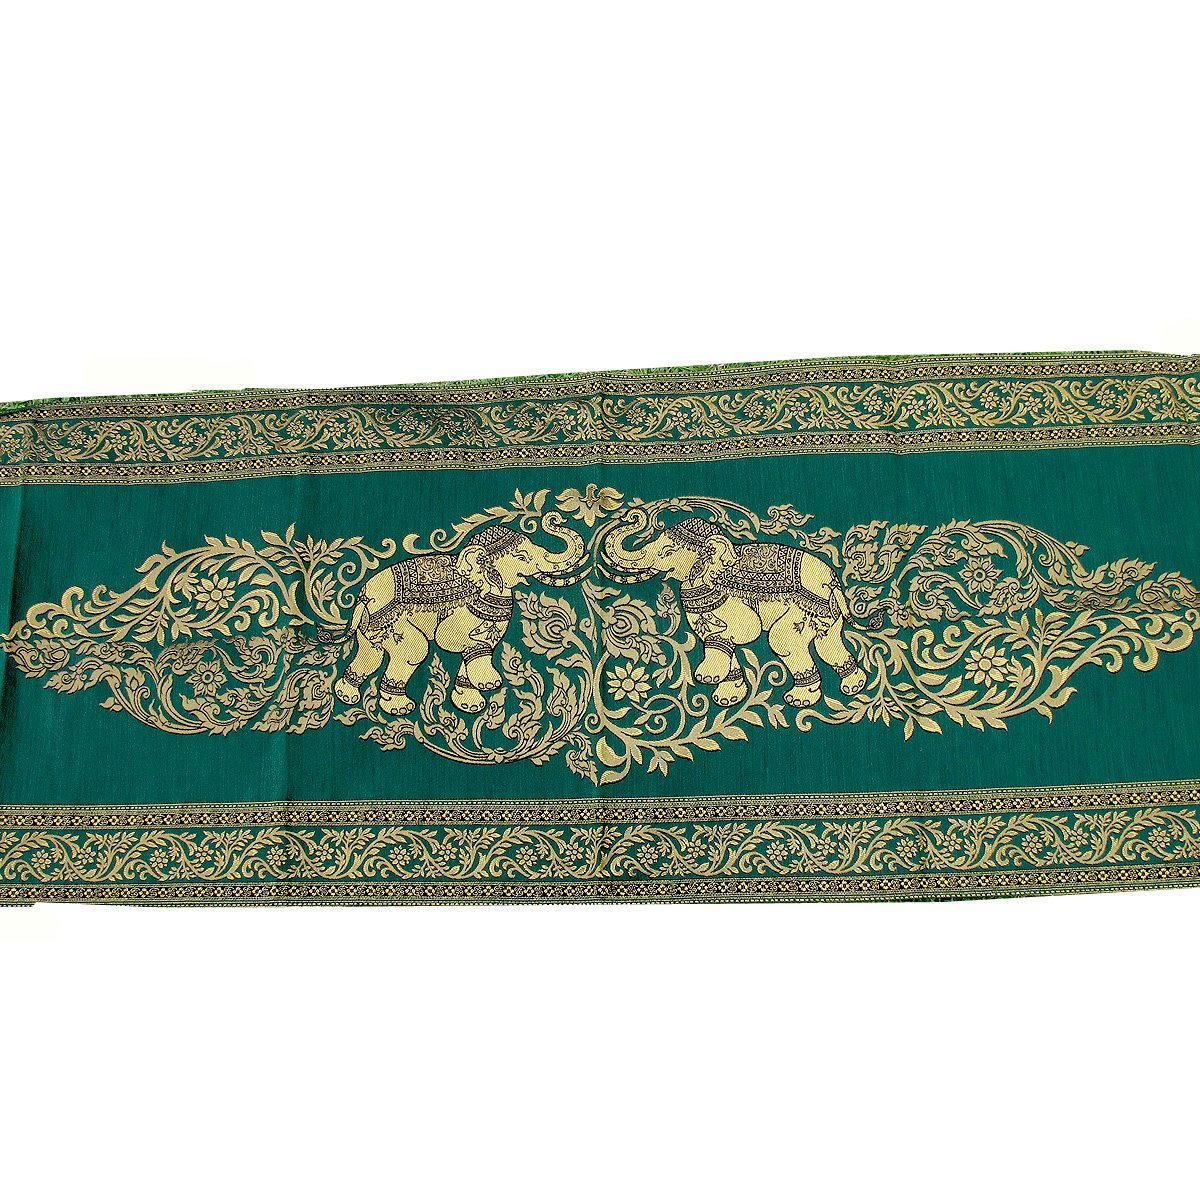 Danai Presents.LOVELY ELEPHANT FOR KING SIZE BED BEAUTIFUL BED RUNNER WIDTH 19 IMCHES LONG 80 INCHES